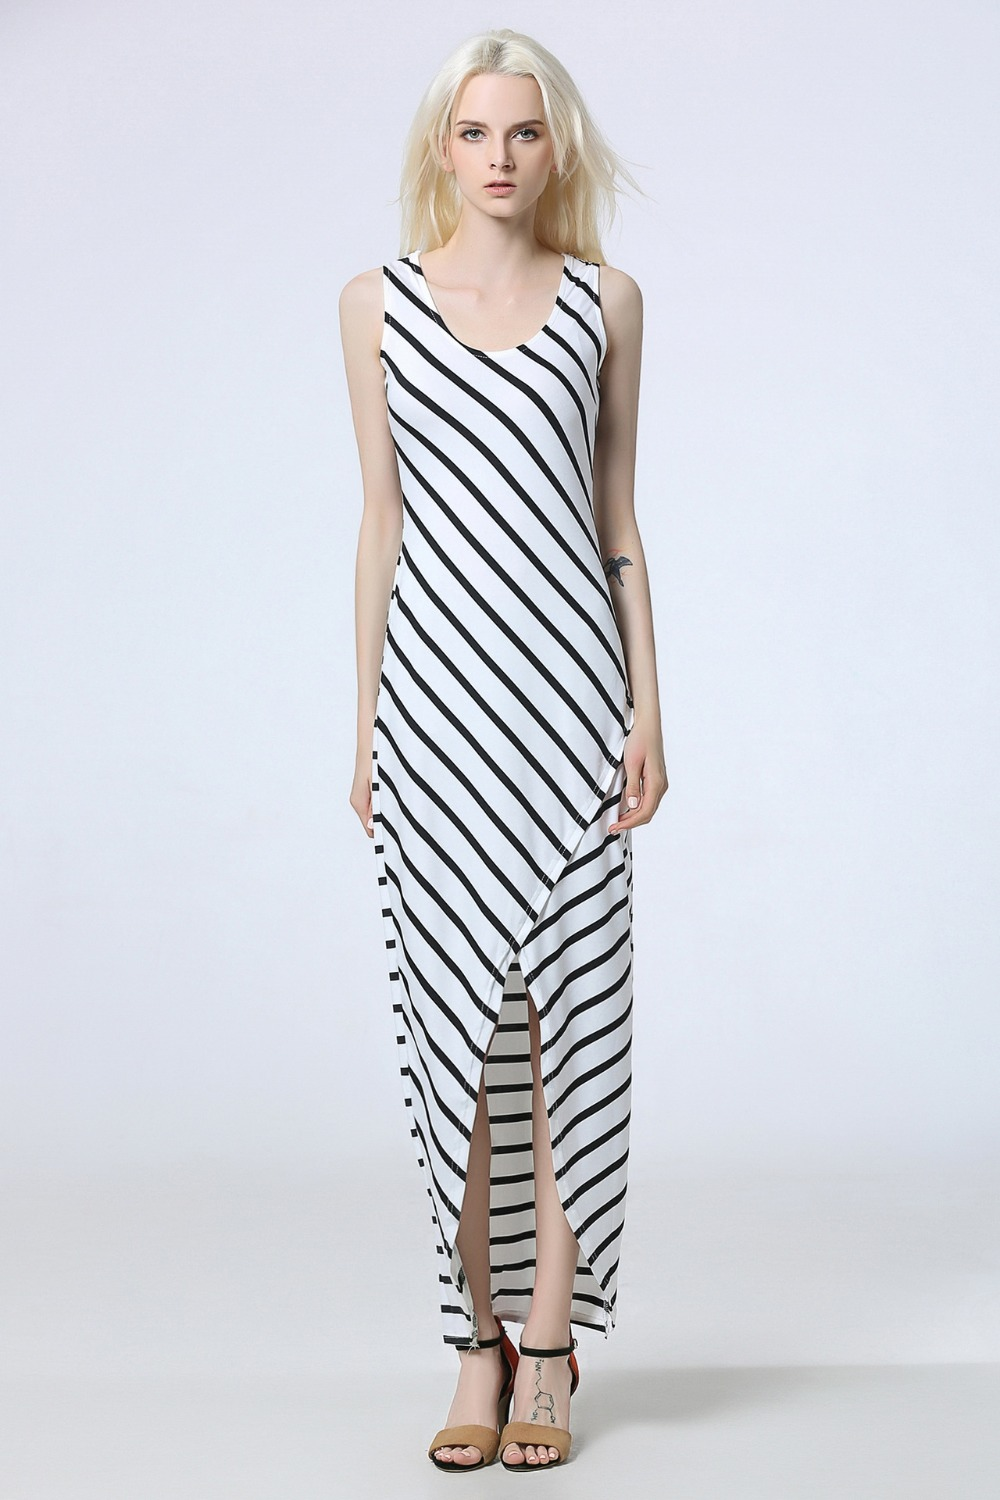 2017 ebay hot maternity clothes for pregnant women sexy dress 2017 ebay hot maternity clothes for pregnant women sexy dress striped asymmetrical sleeveless chiffon dress camisole in dresses from mother kids on ombrellifo Image collections